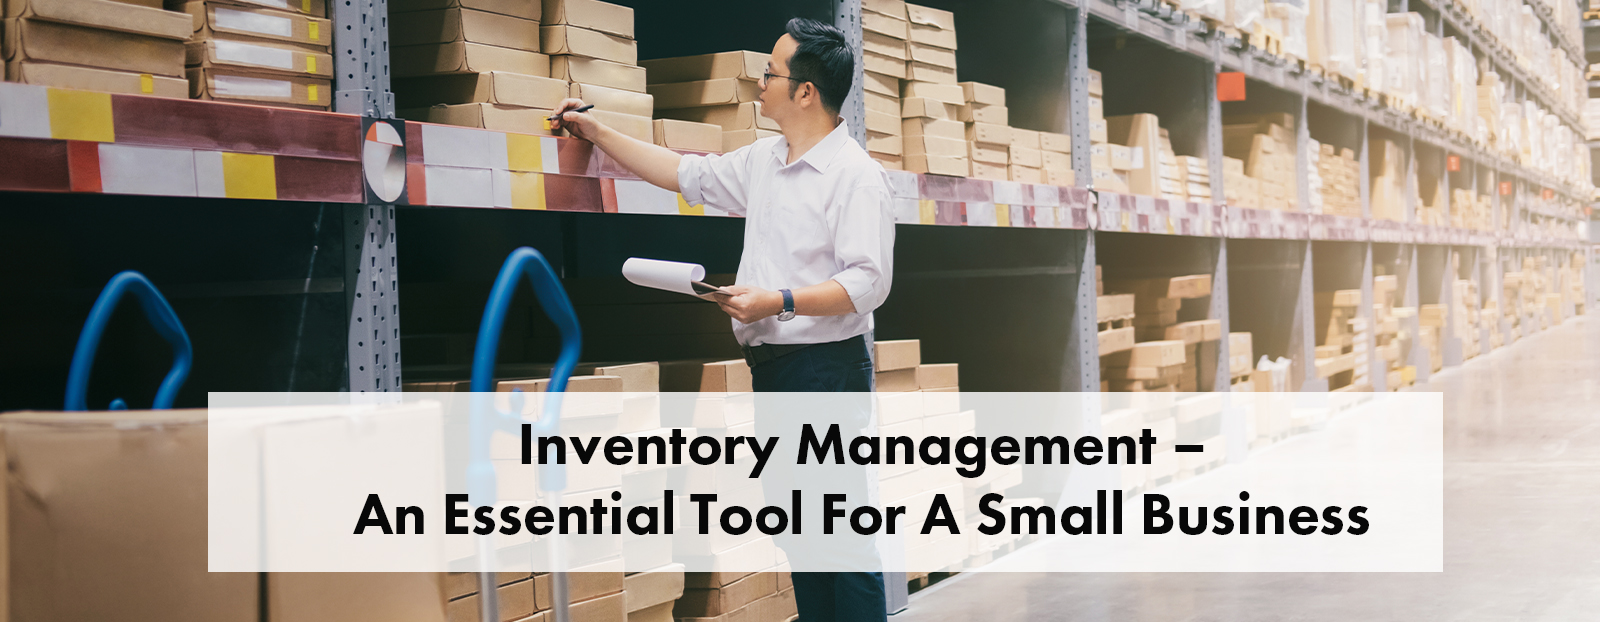 Inventory Management – An Essential Tool For A Small Business